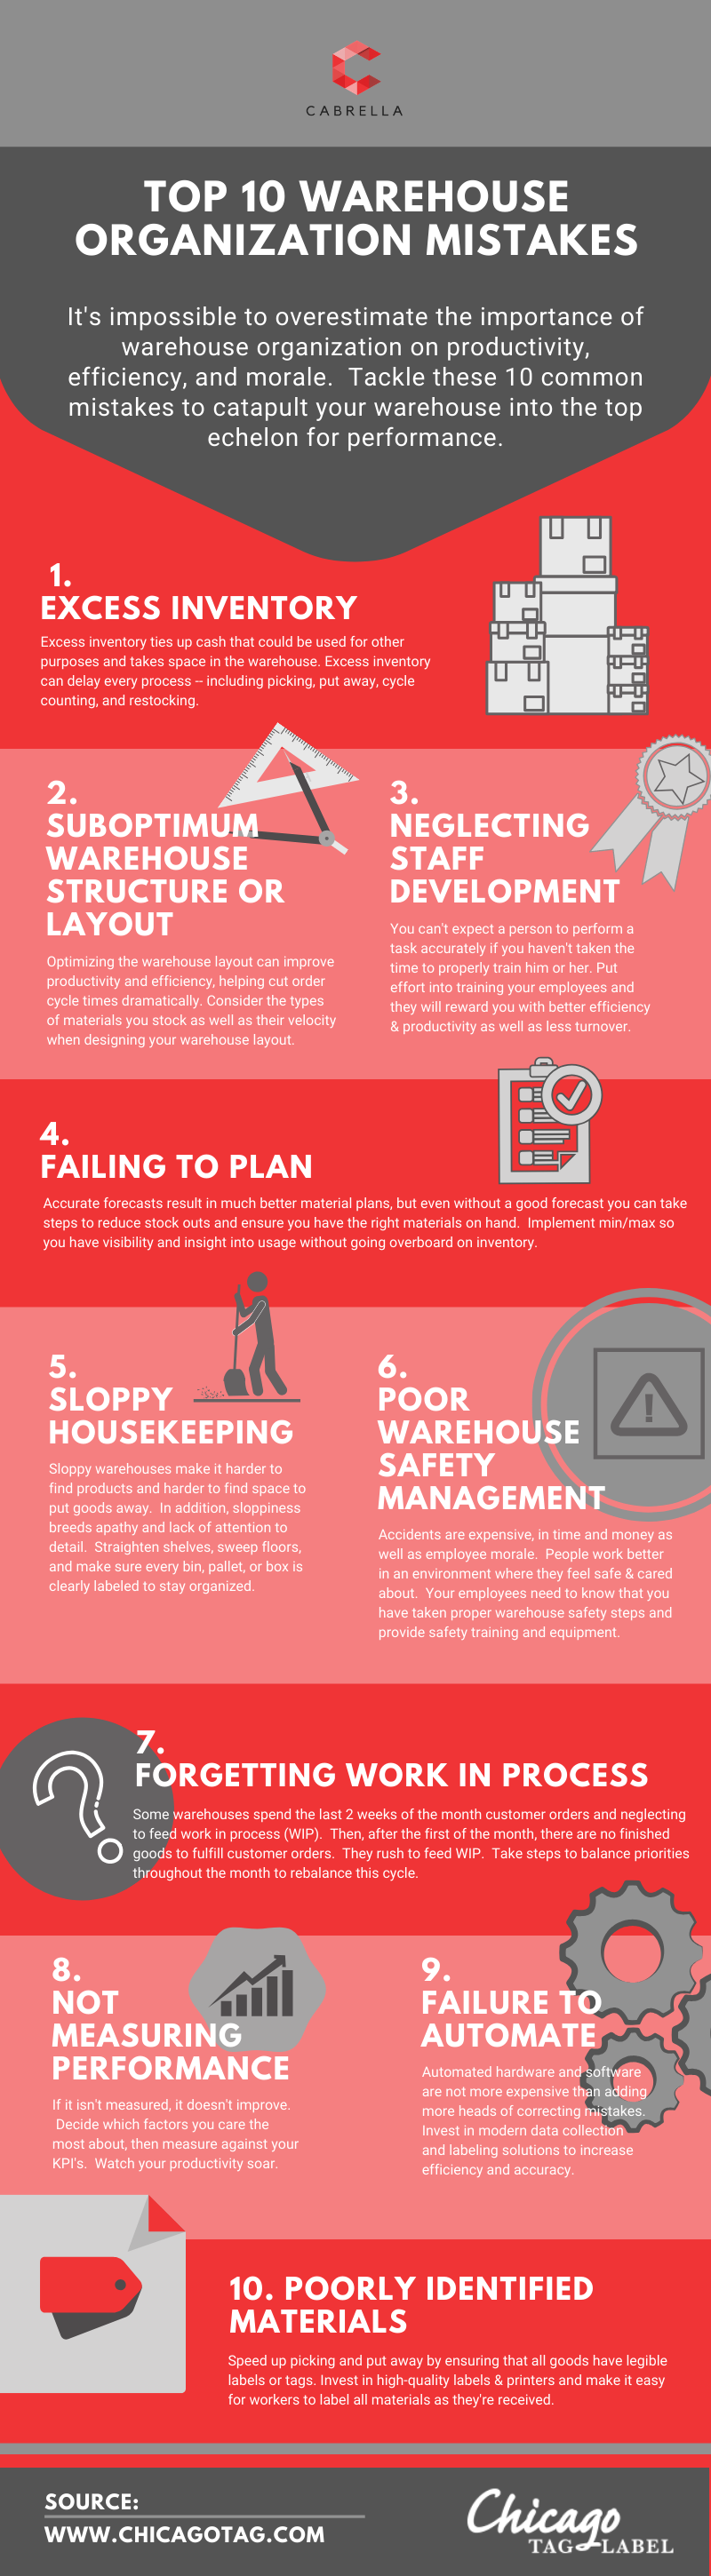 Common Mistakes with Warehouse Organization Infographic